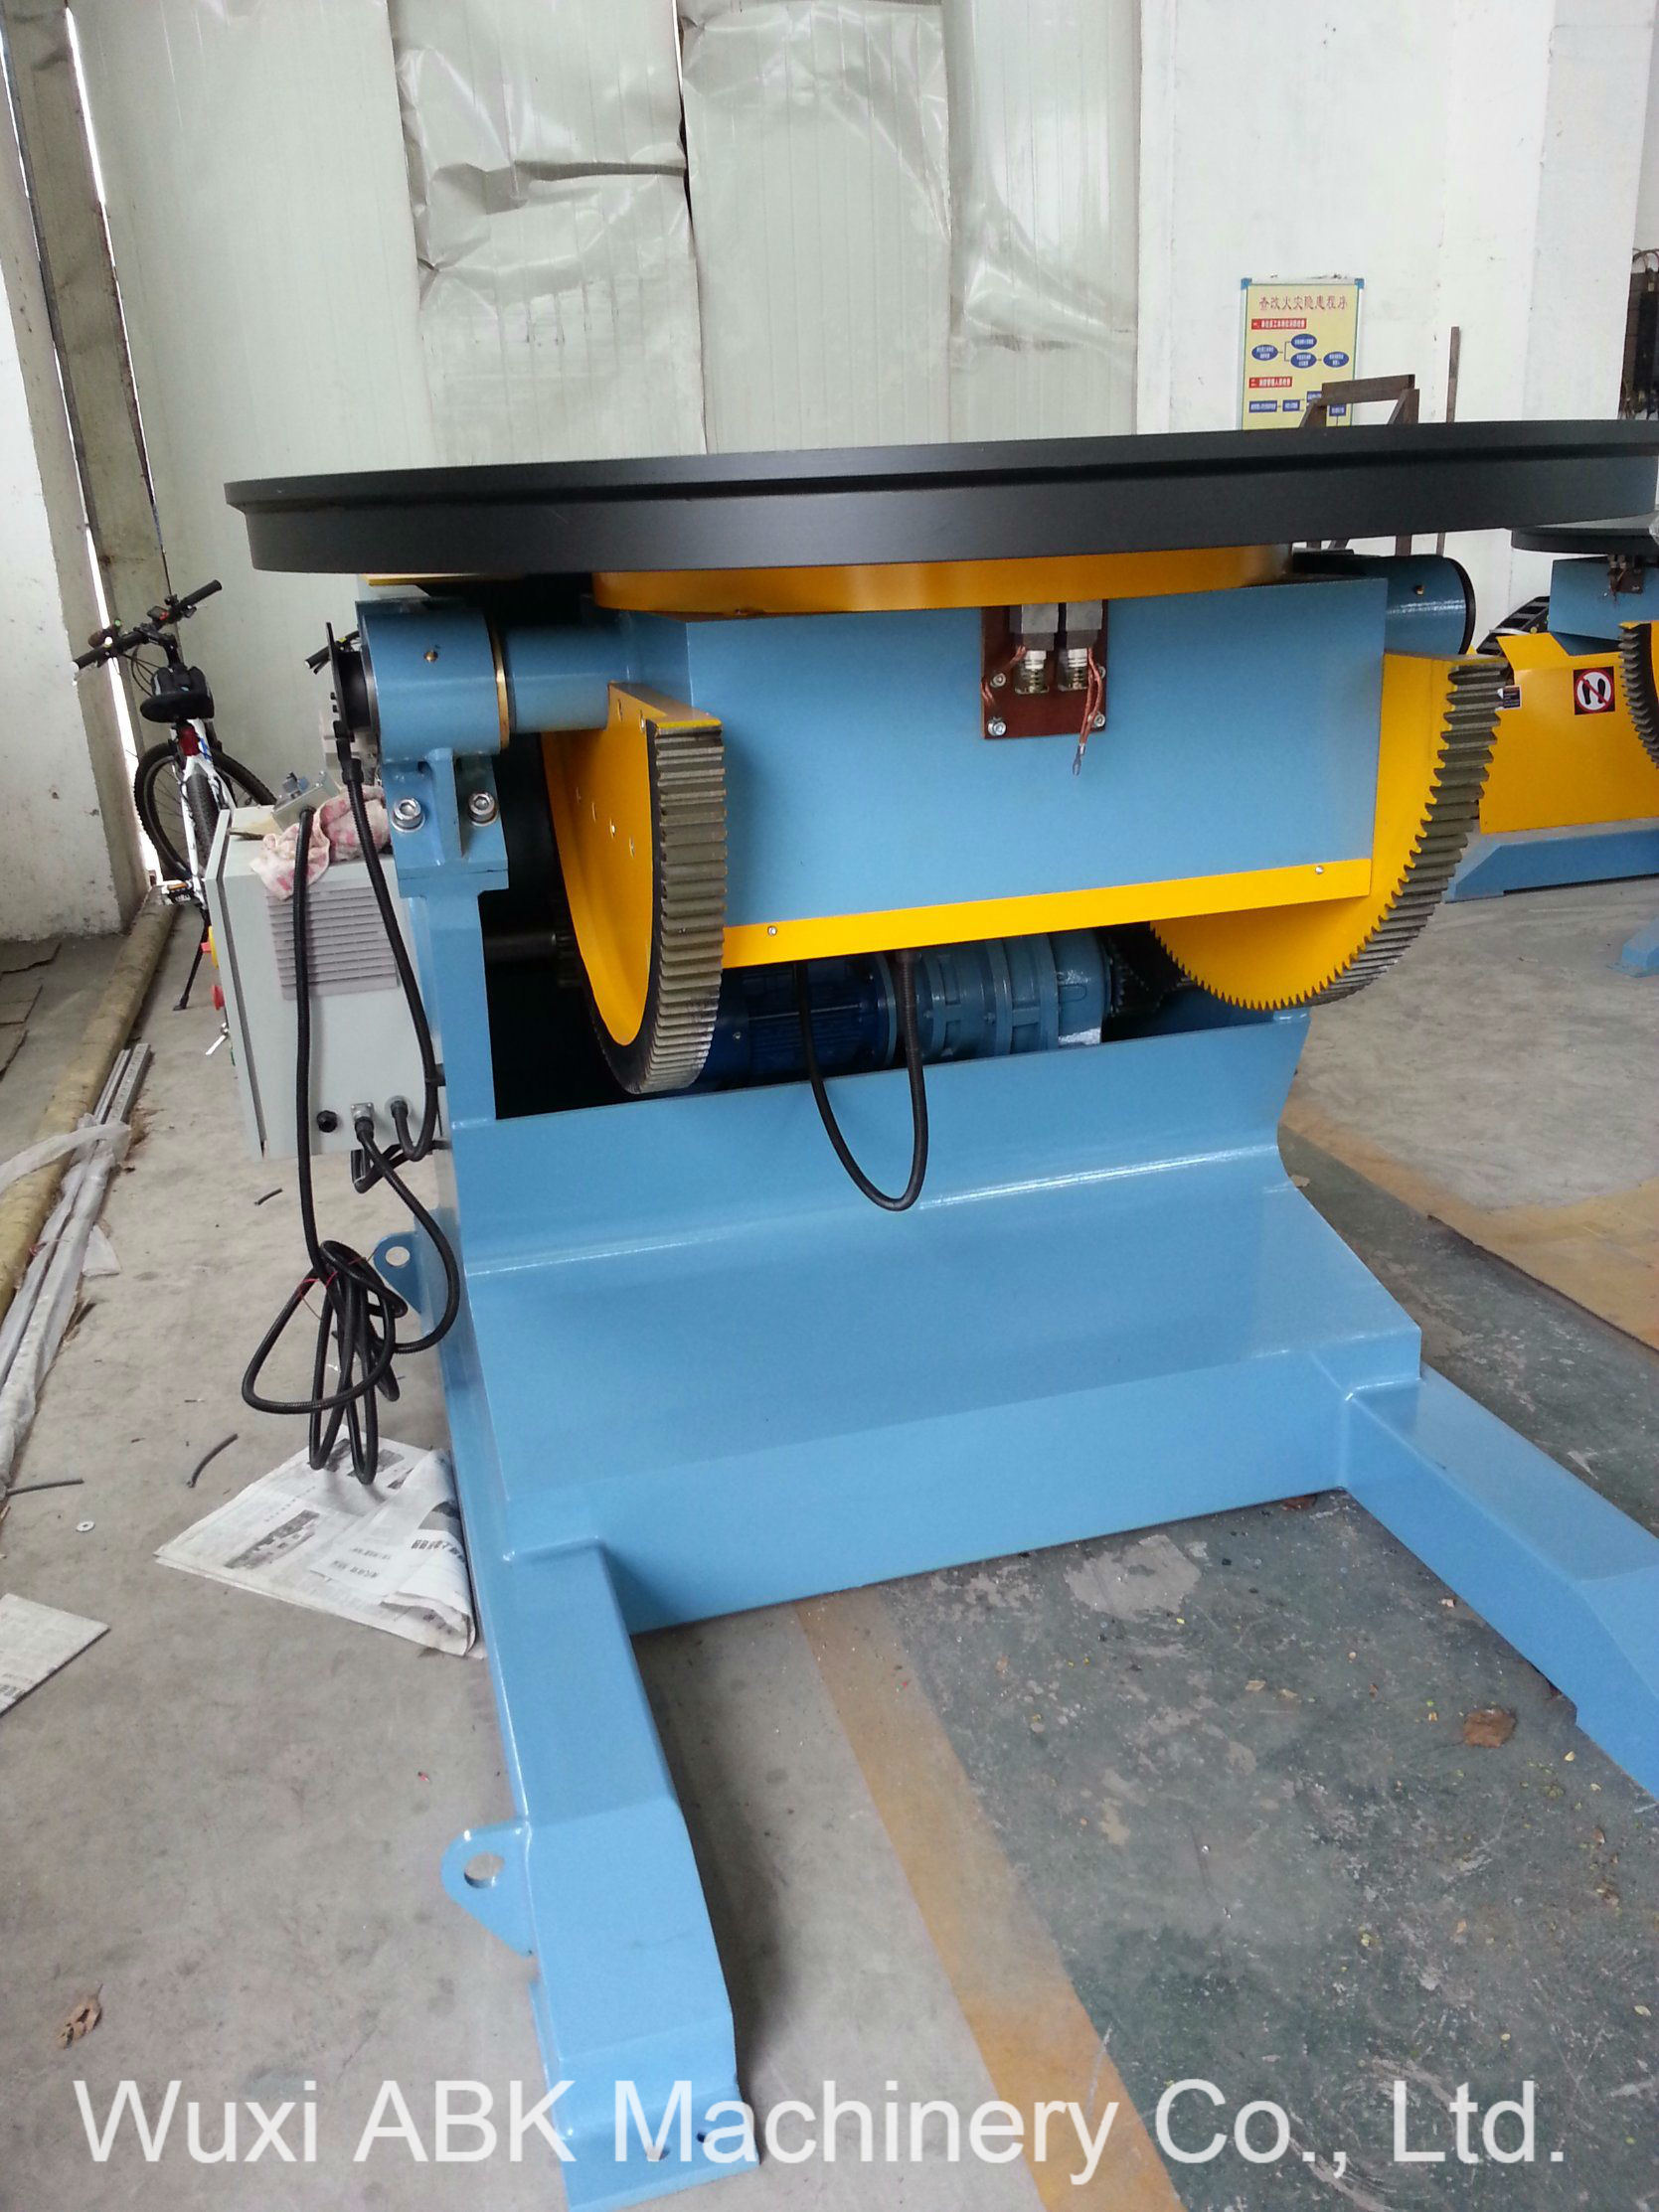 China HBJ-50 Flipping Rotating Automatic Welding Table/Welding ...